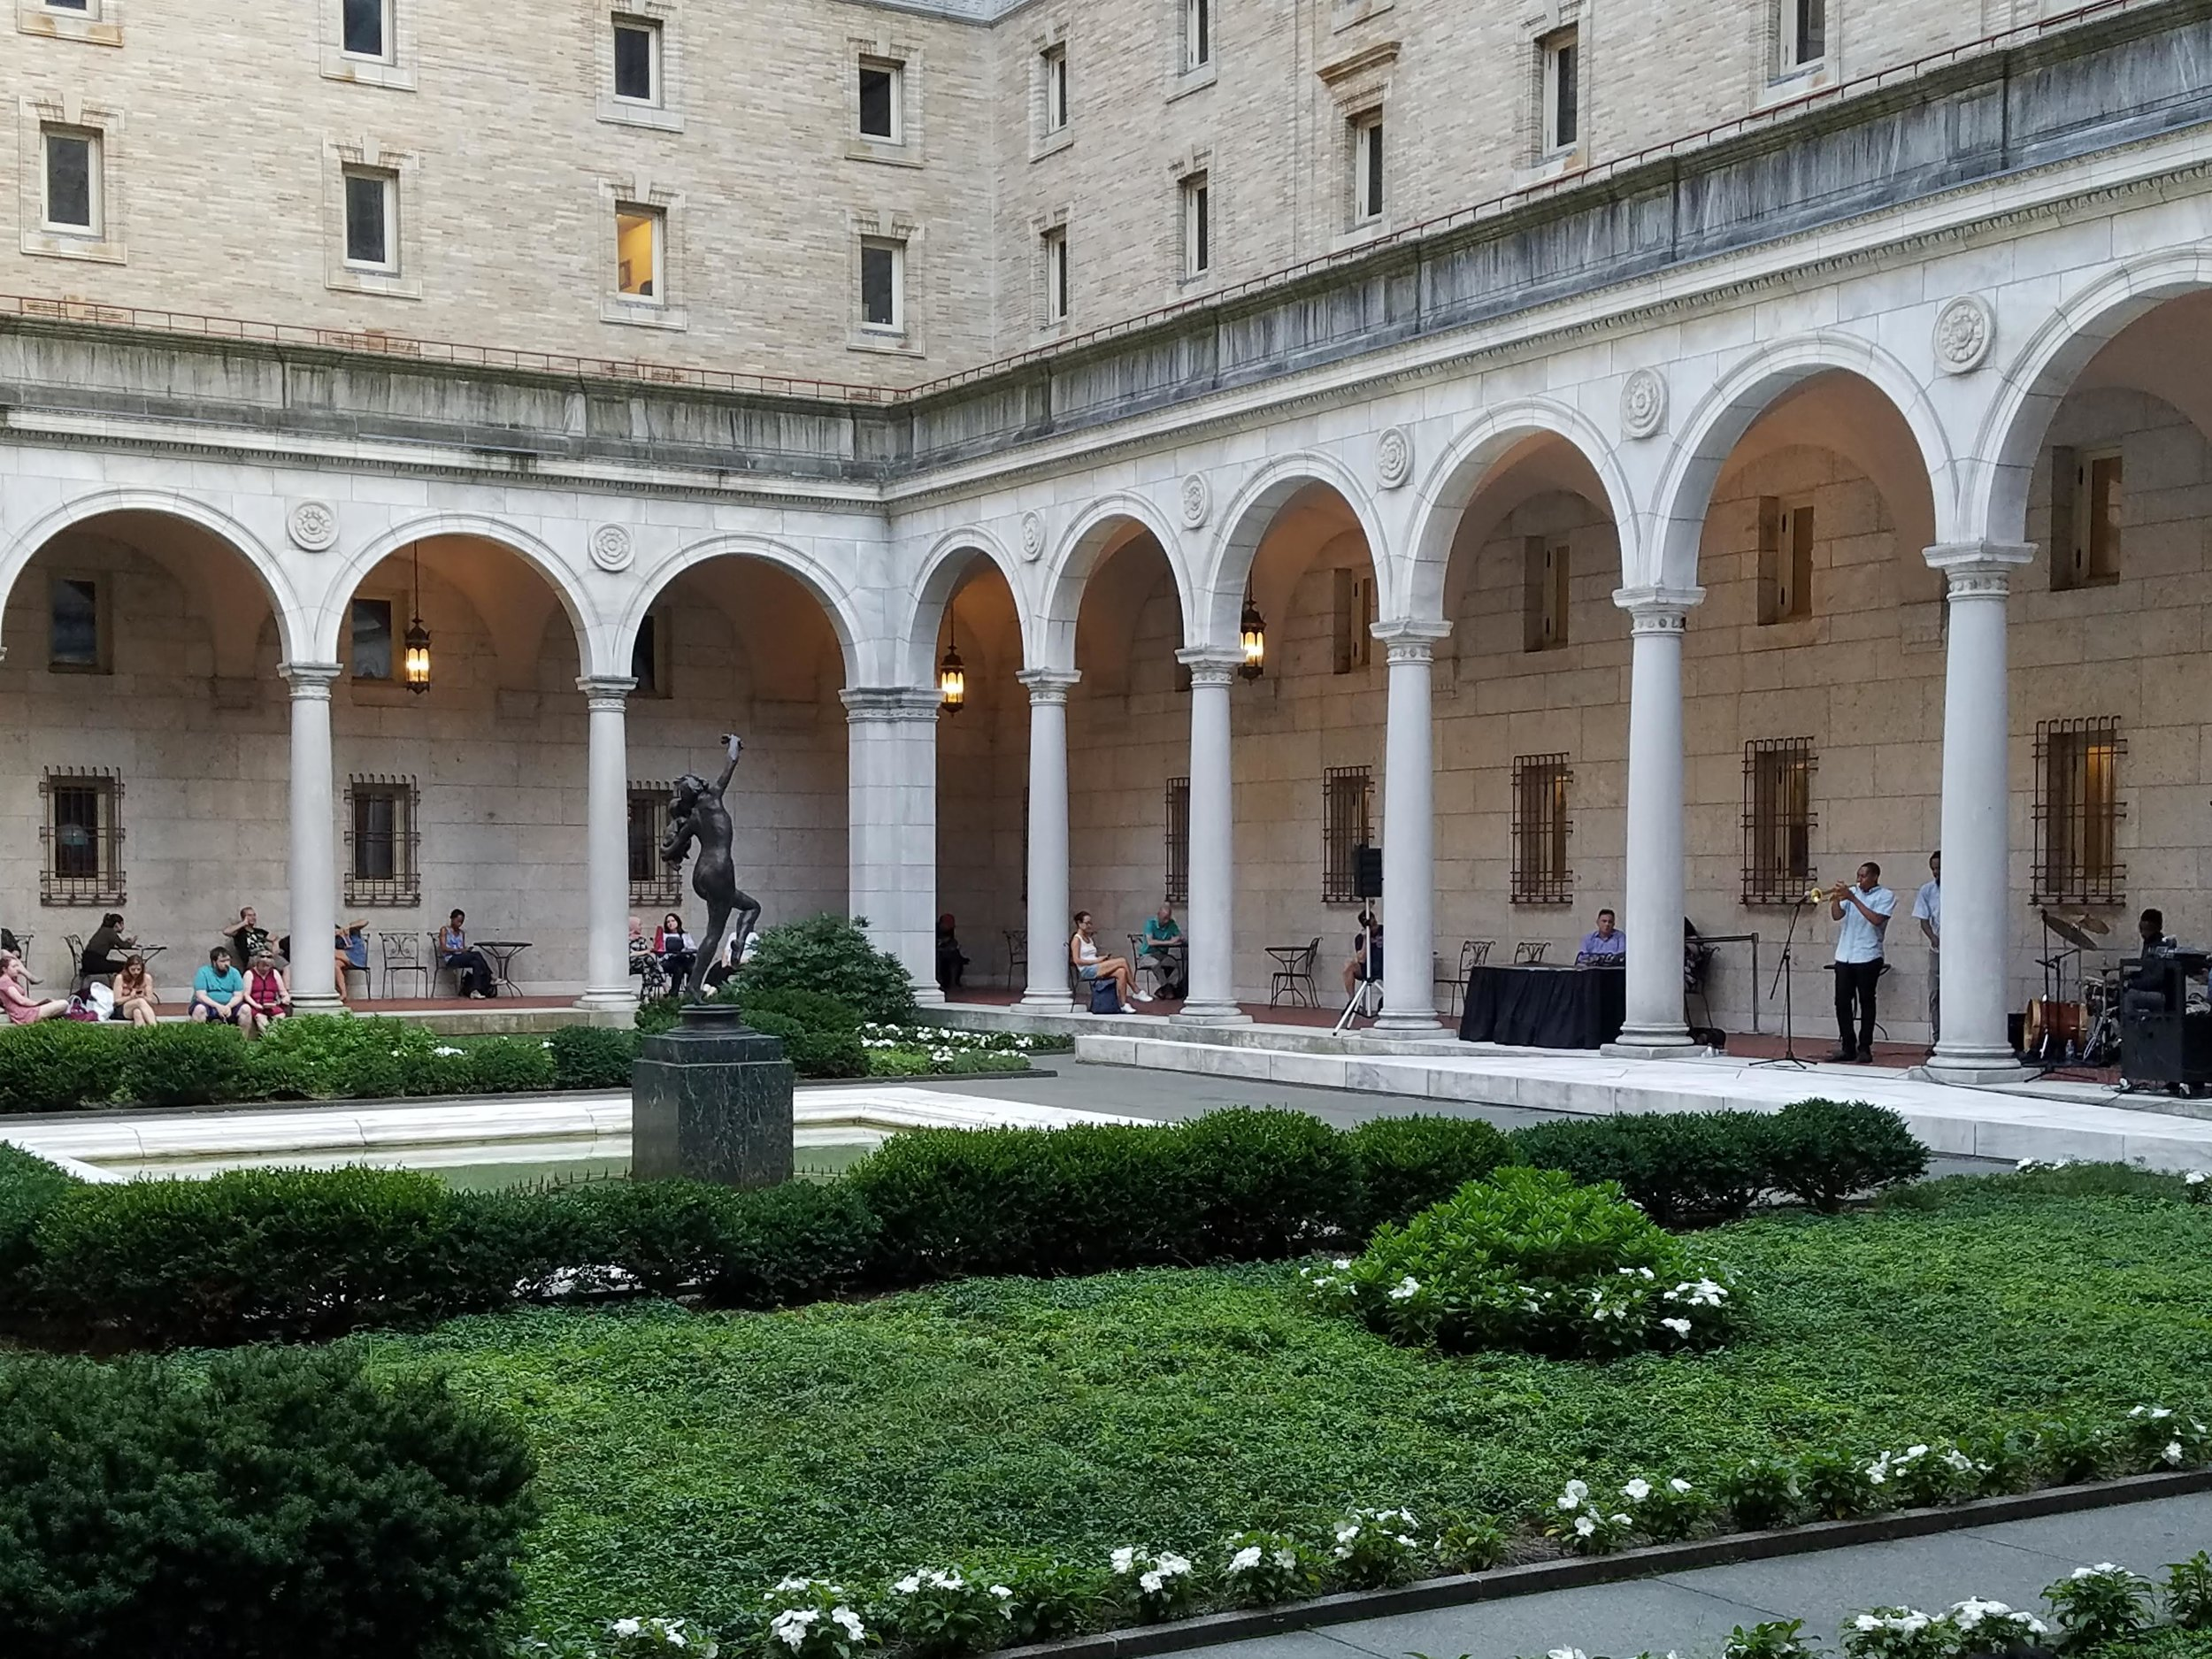 Boston Public Library Courtyard / Taken by Trish Fontanilla